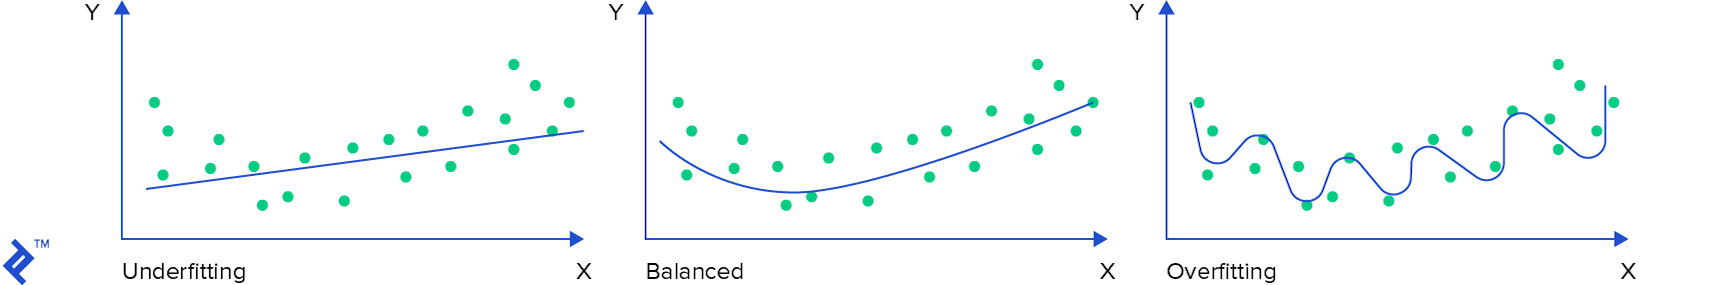 Underfitting, balanced, and overfitting graphs. A balanced function follows the general trend of the data points well enough, without sticking too closely to individual data points